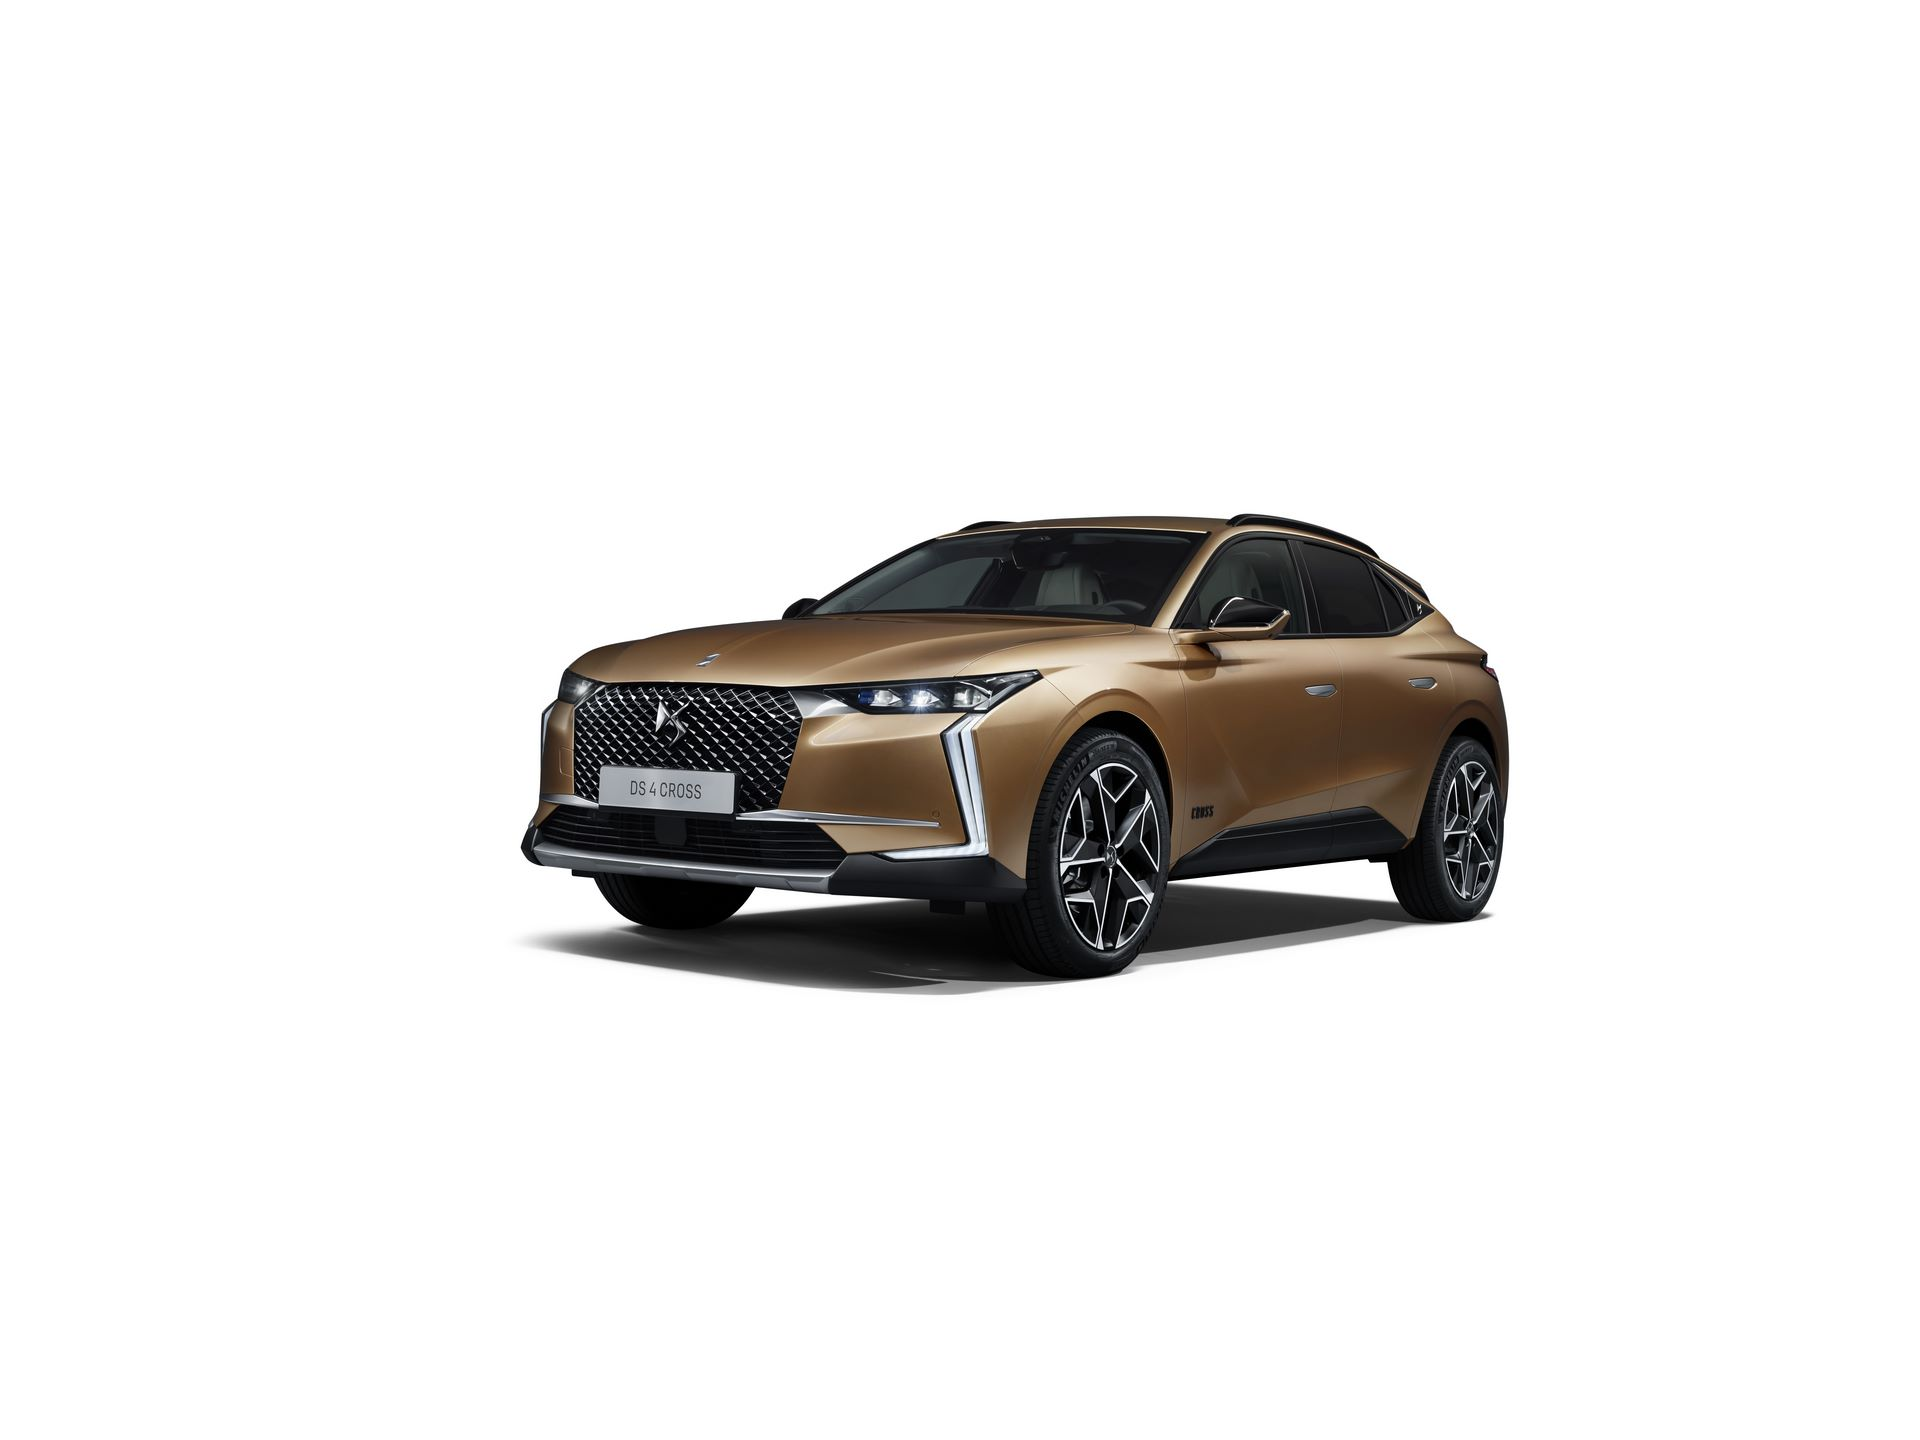 DS4-and-DS4-Cross-2021-42